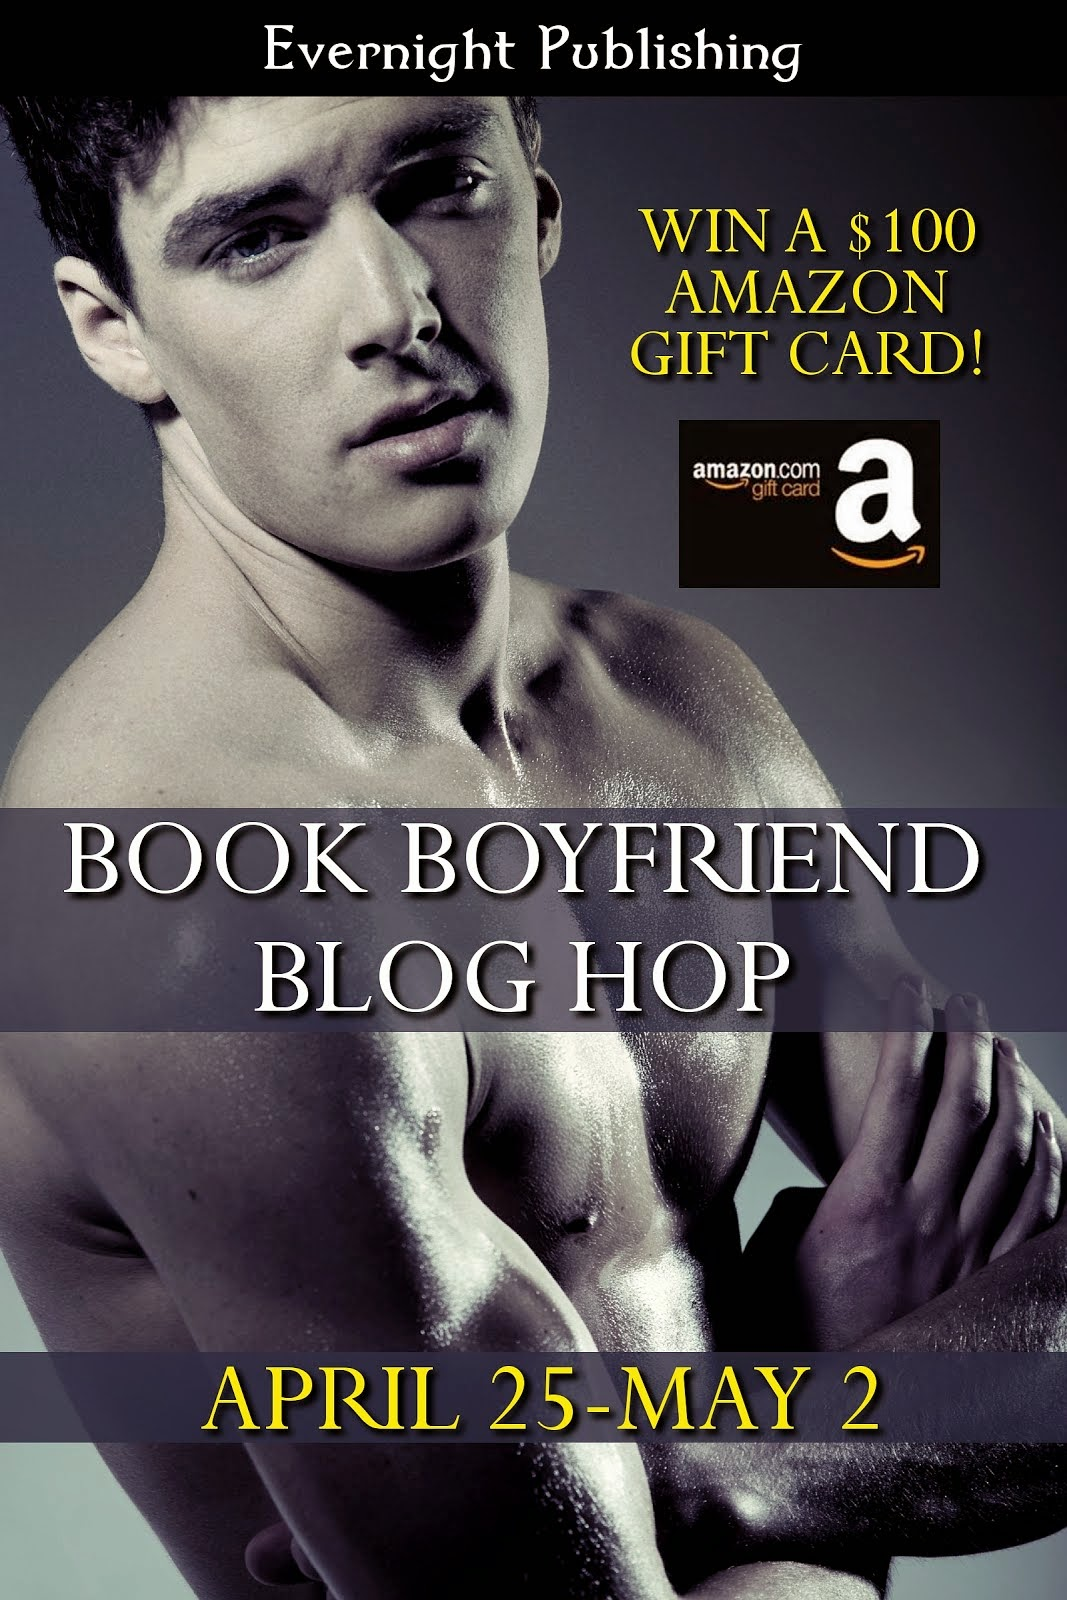 Book Boyfriend Blog Hop